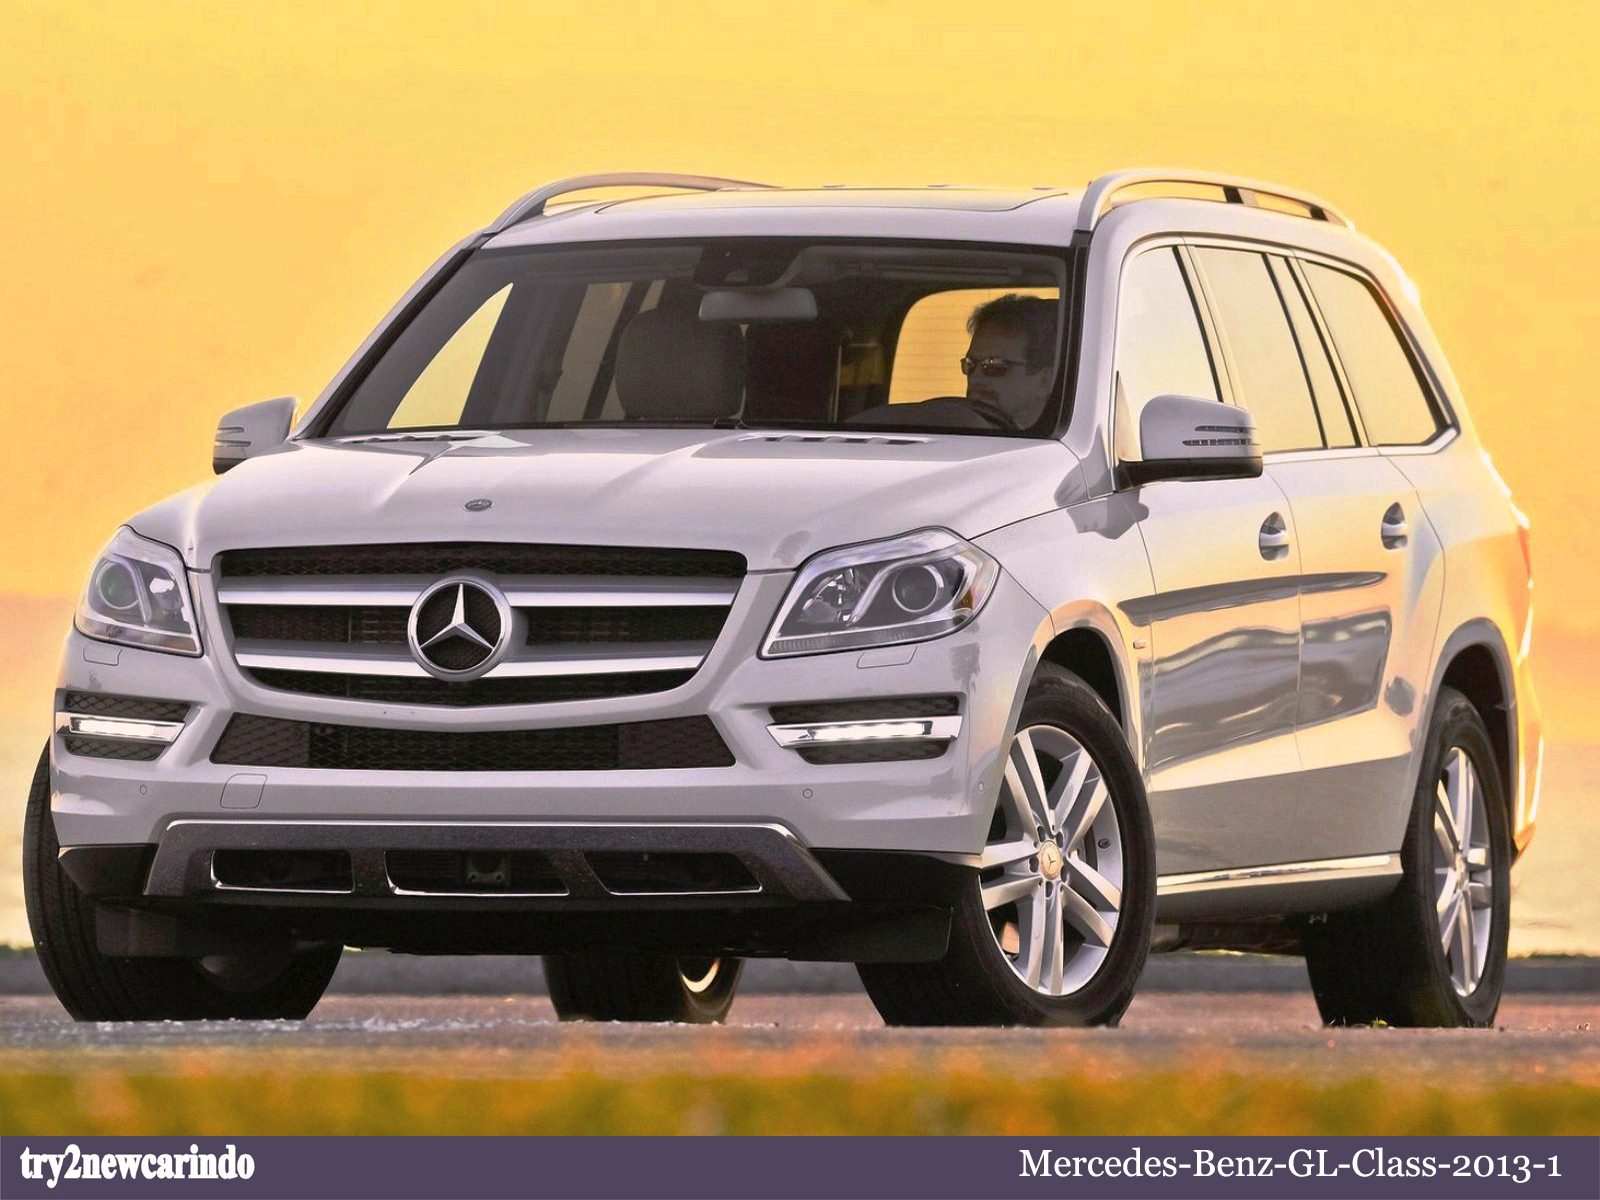 Try2newcarindo: 2013 Mercedes-Benz GL-Class